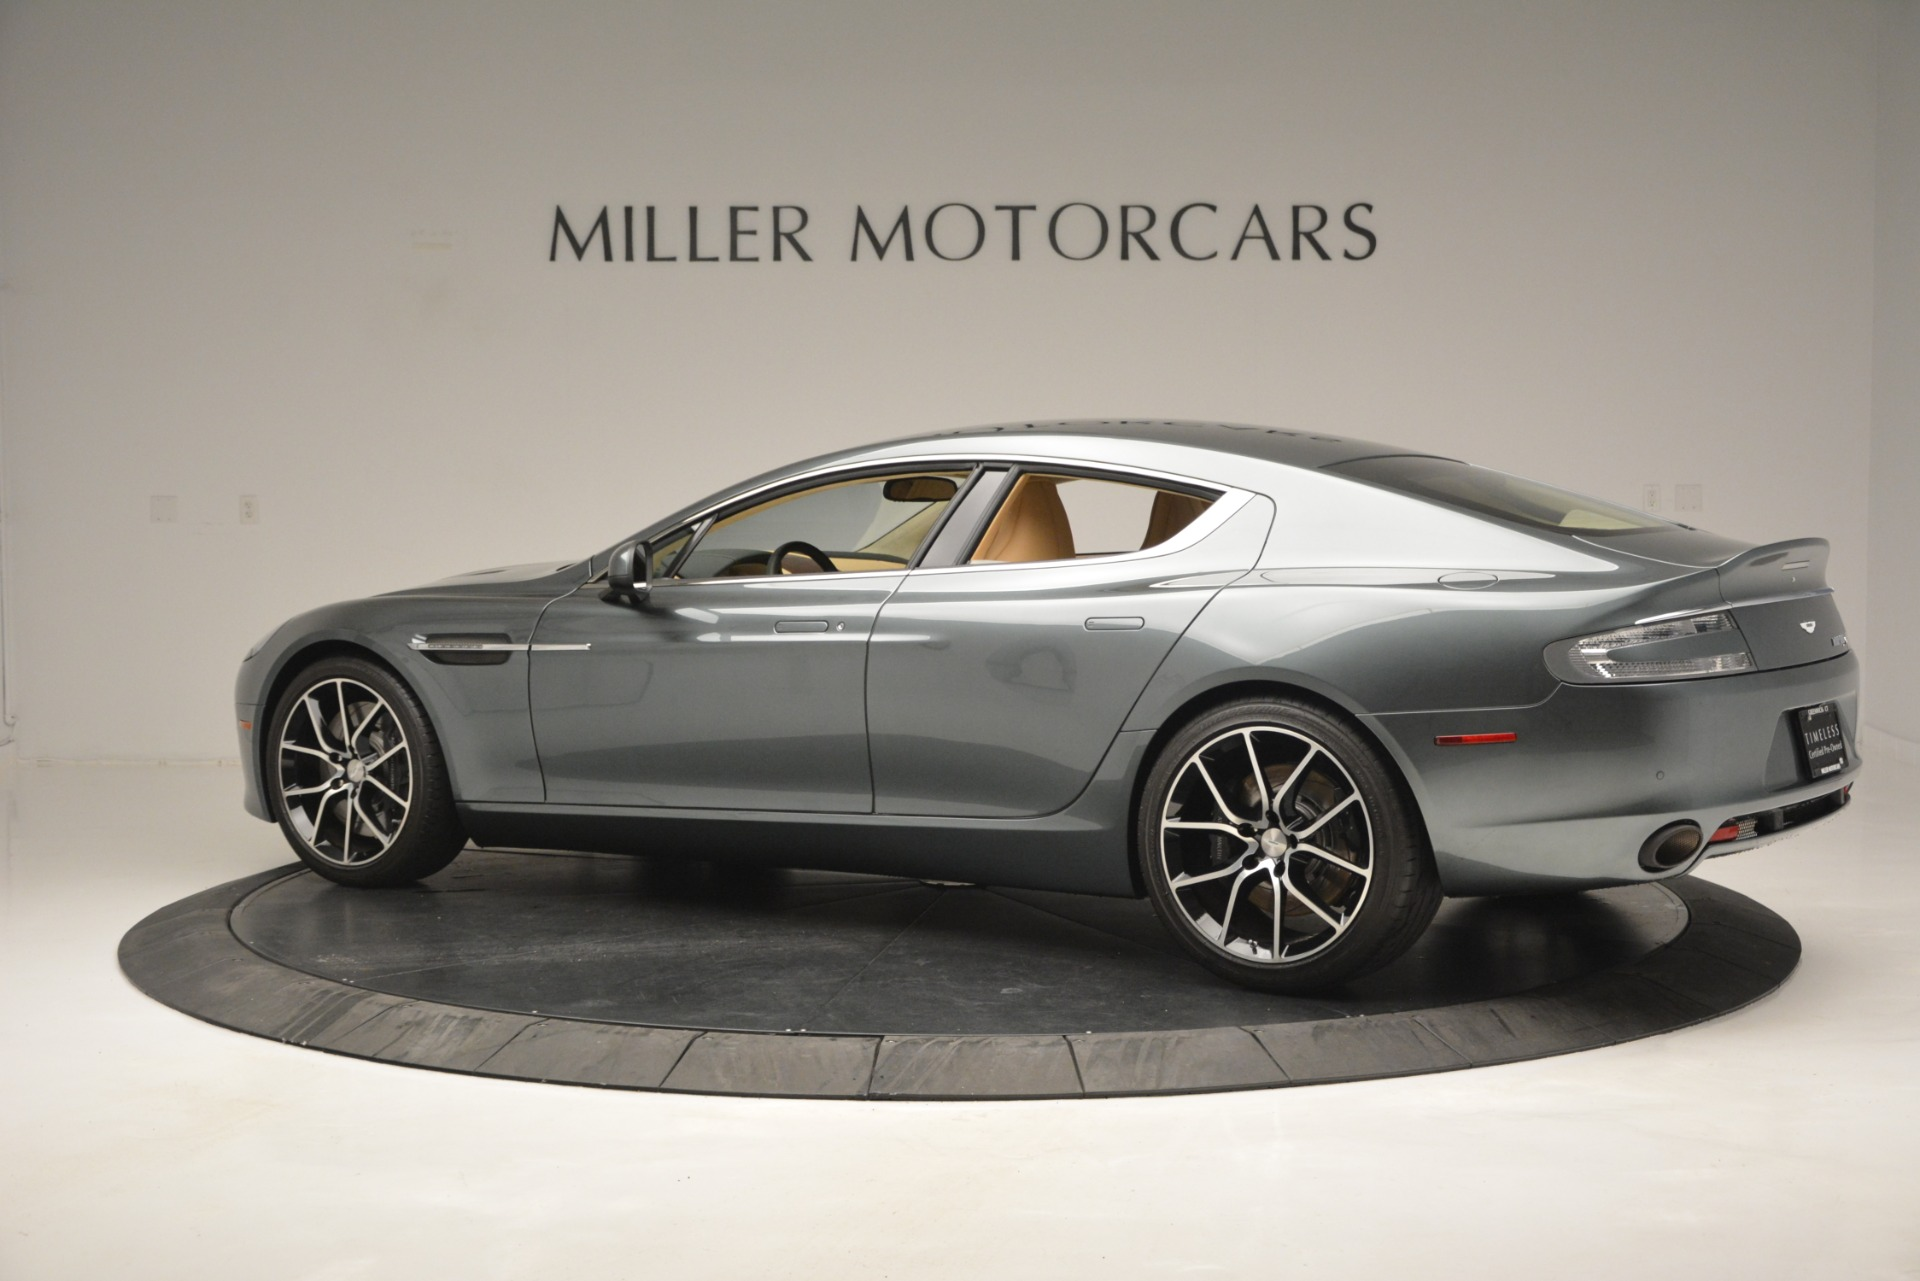 Pre Owned 2017 Aston Martin Rapide S Sedan For Sale Special Pricing Mclaren Greenwich Stock 7462